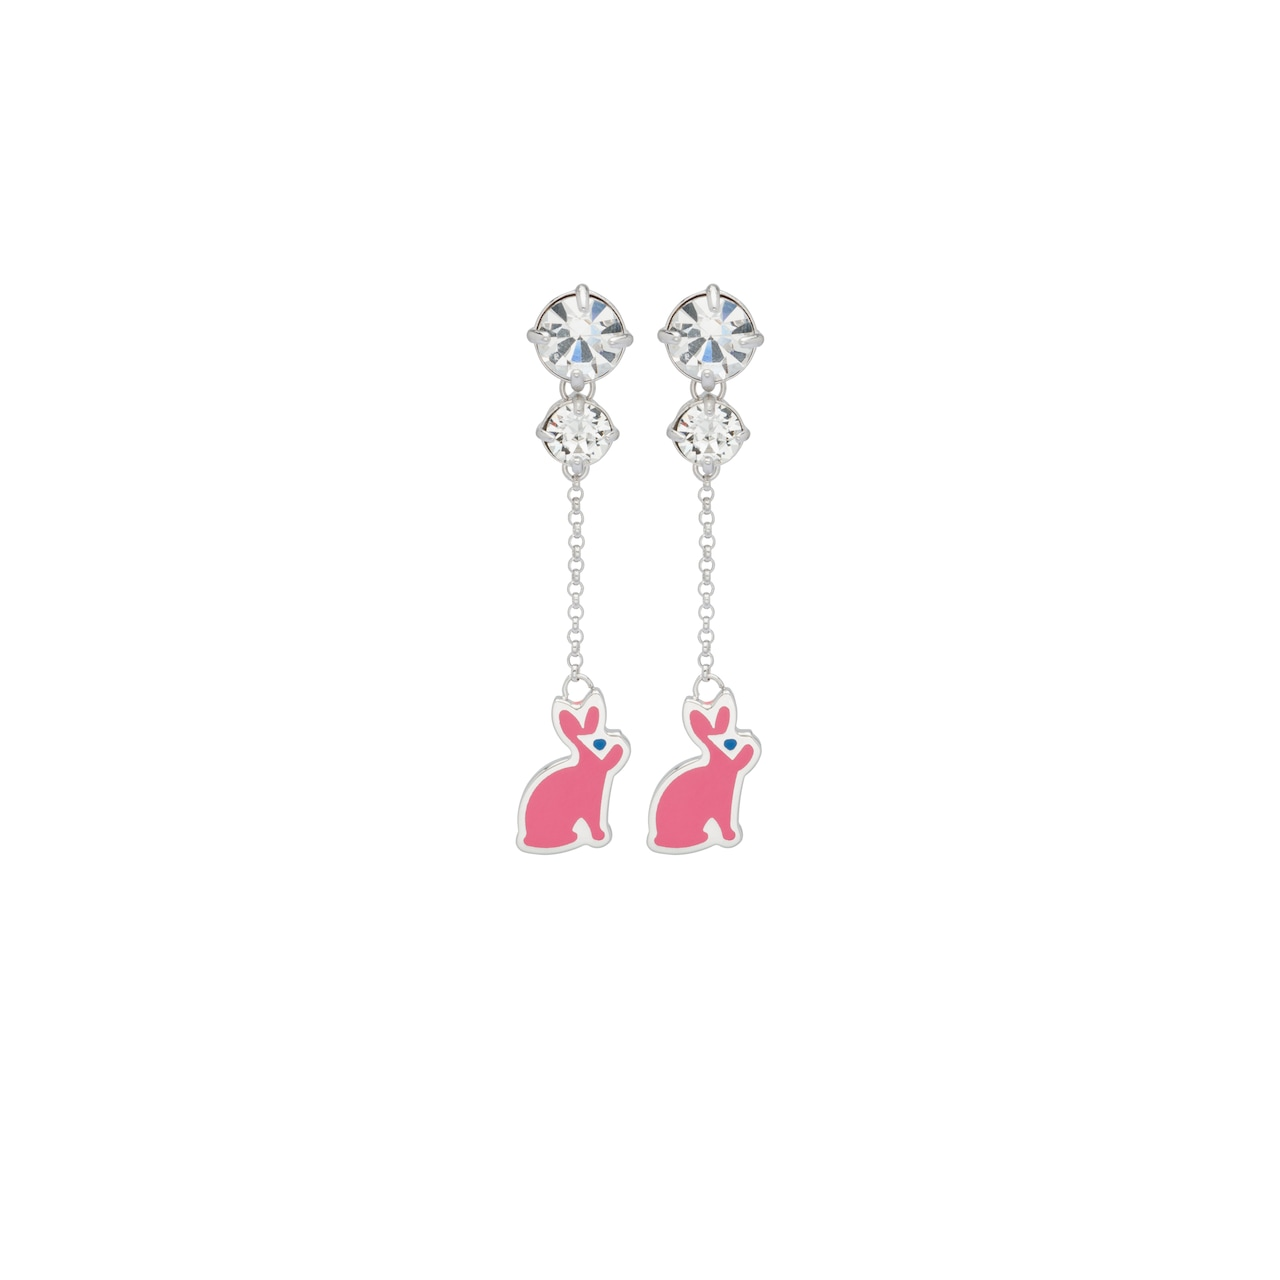 Silver earrings with charm